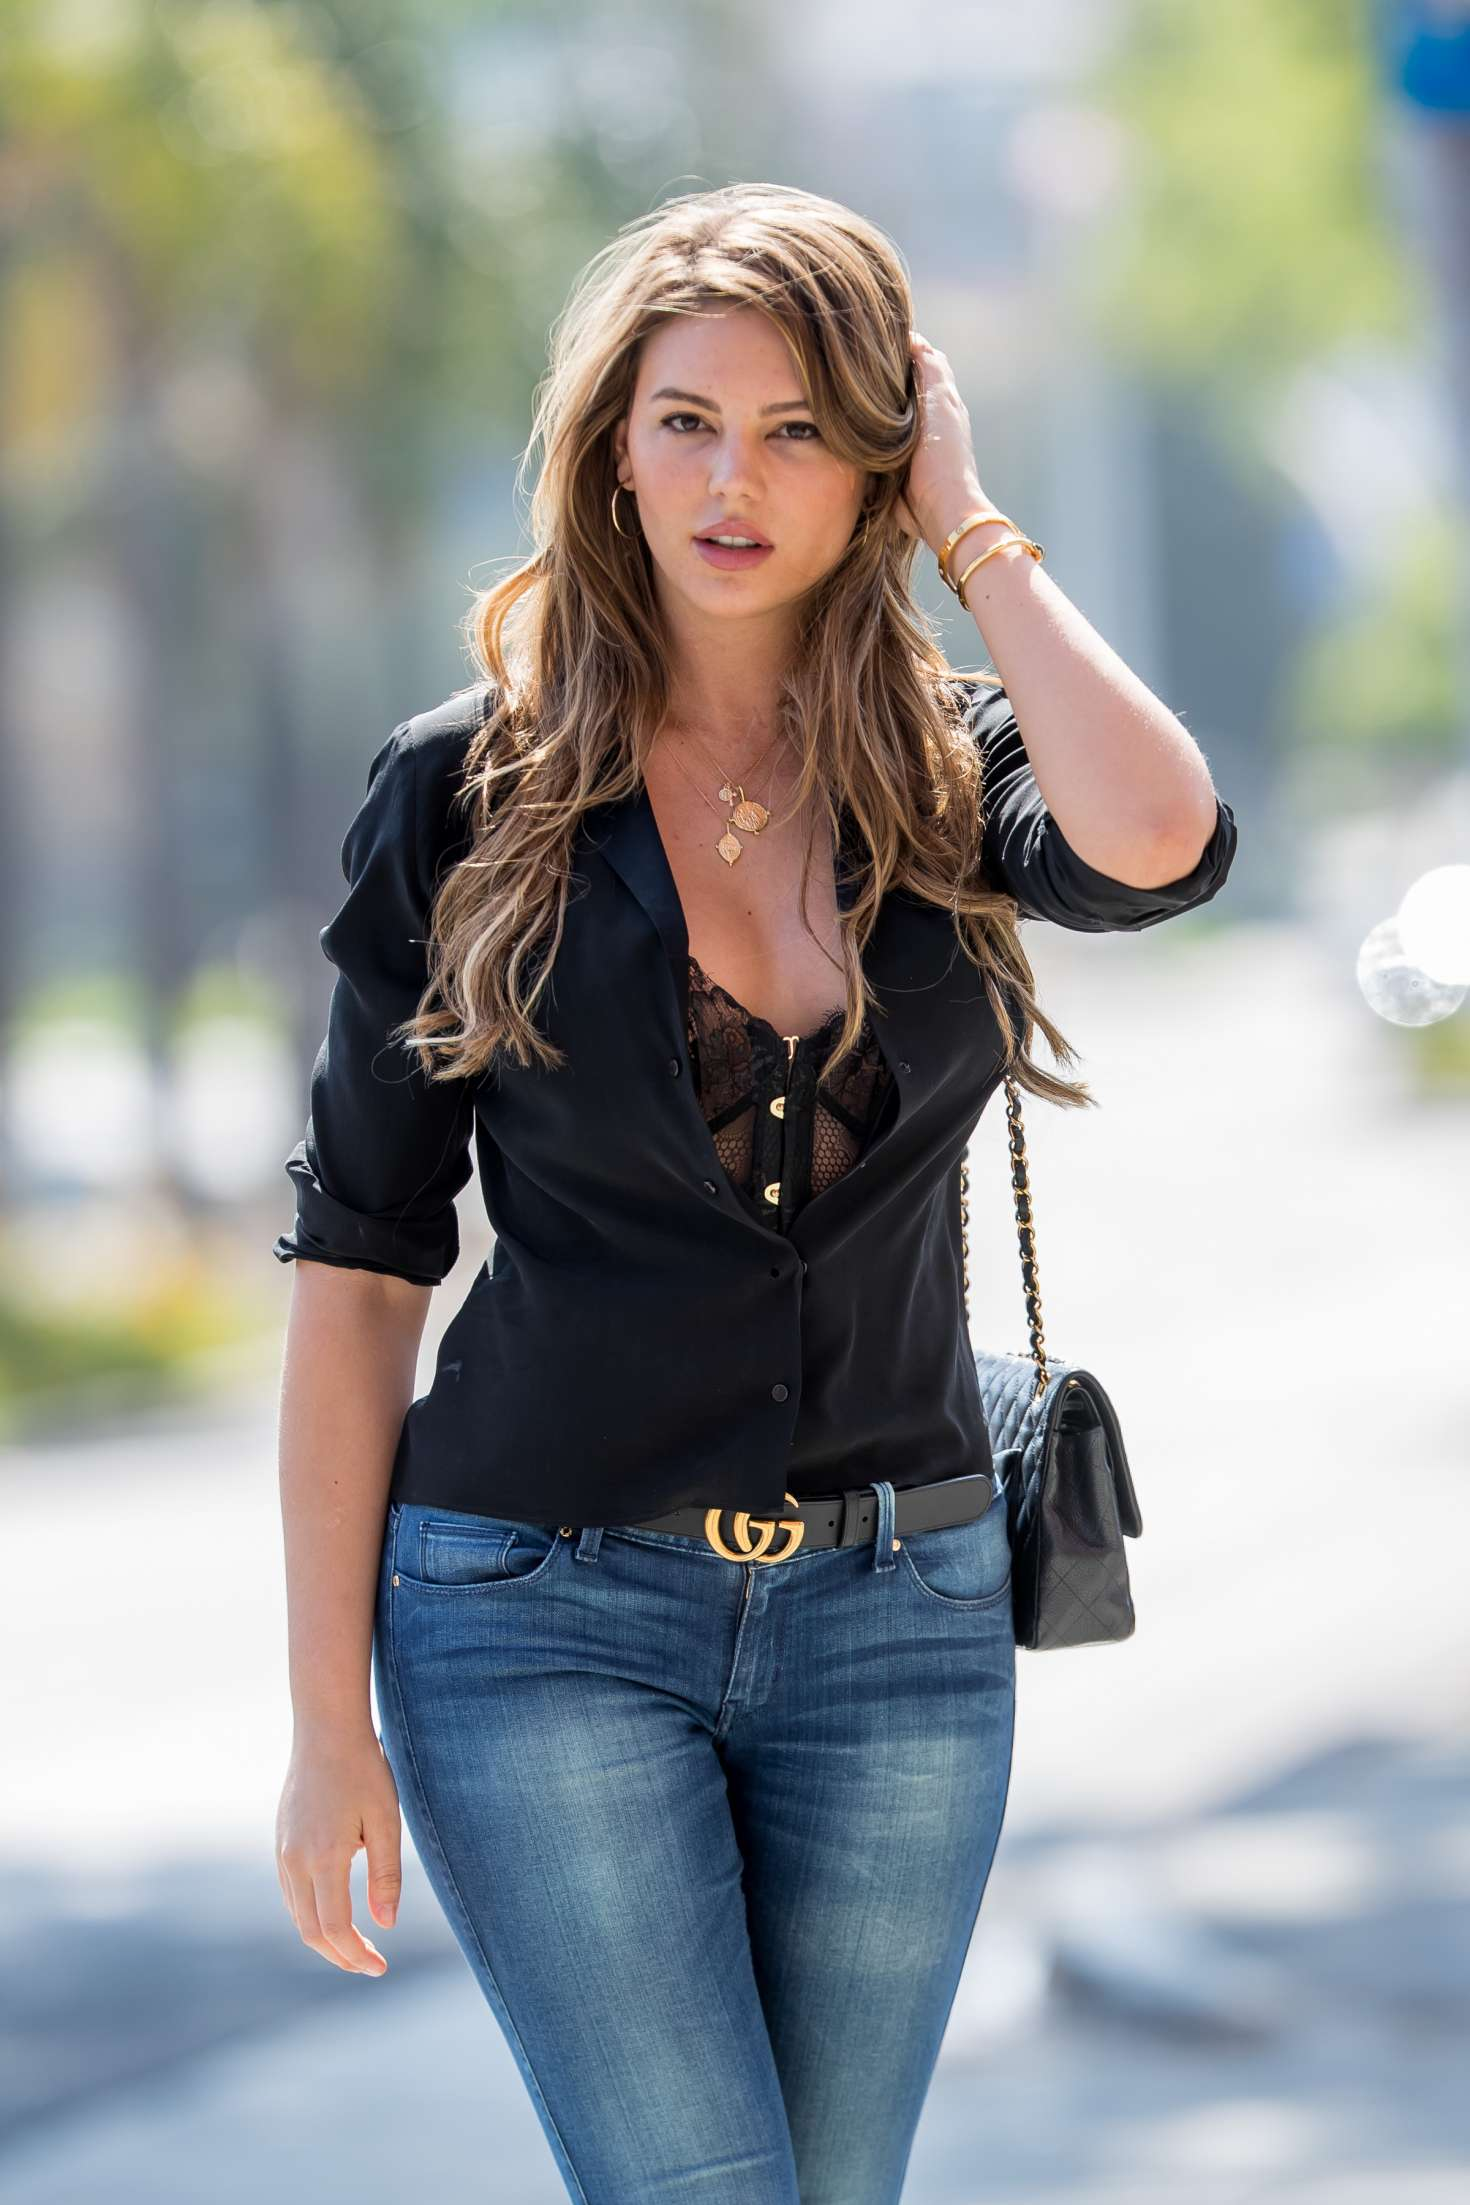 Zita Vass in Jeans out in Los Angeles | GotCeleb